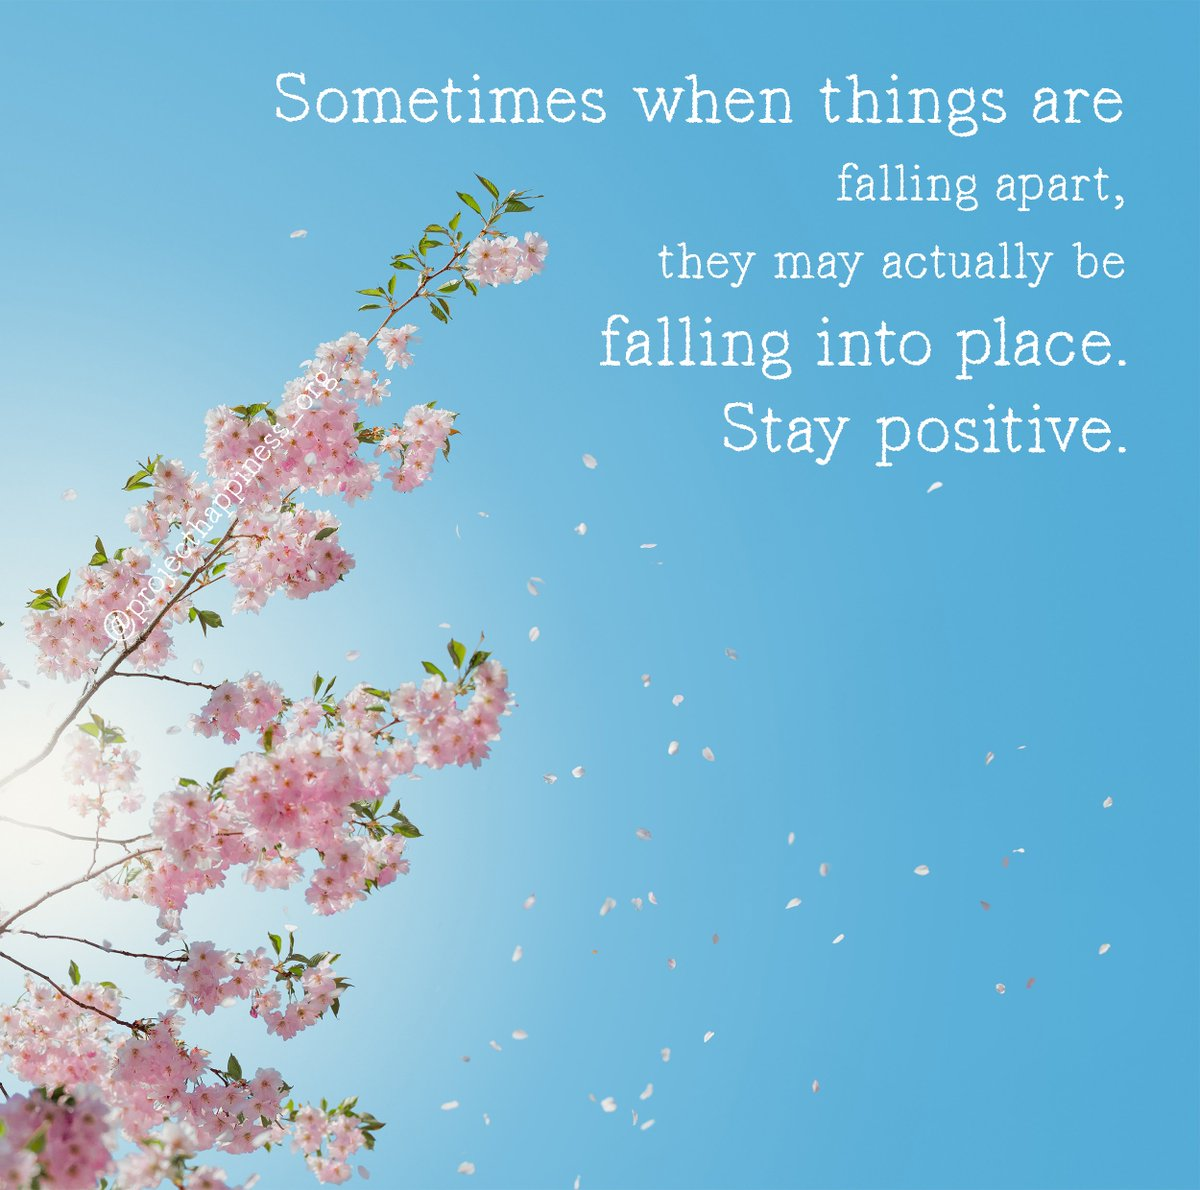 &quot;Sometimes when things are falling apart, they may actually be falling into place. Stay positive.&quot;  Strengthen your brain&#39;s ability to pay attention to the positive.   #projecthappiness #mindfulmonday #motivation  @AndersJilden<br>http://pic.twitter.com/9do4R3o4HO